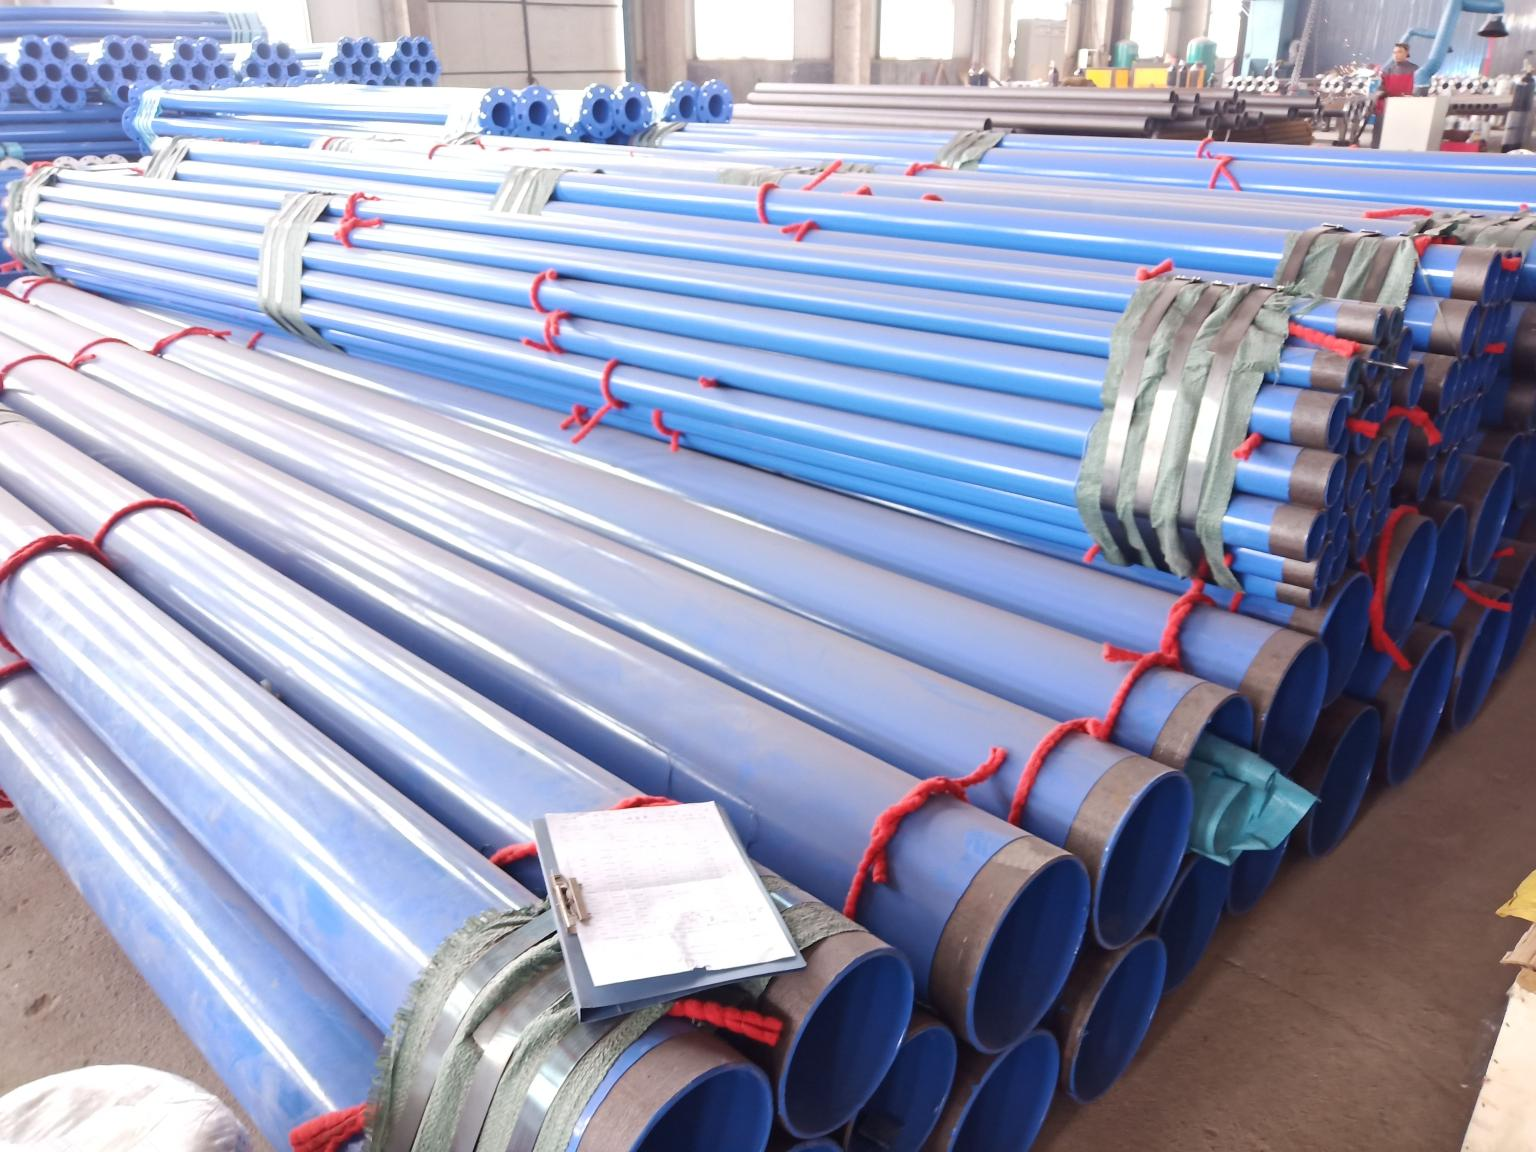 Urban Gas Pipeline Network Using ERW Steel Pipe and its Anti-corrosion Problems